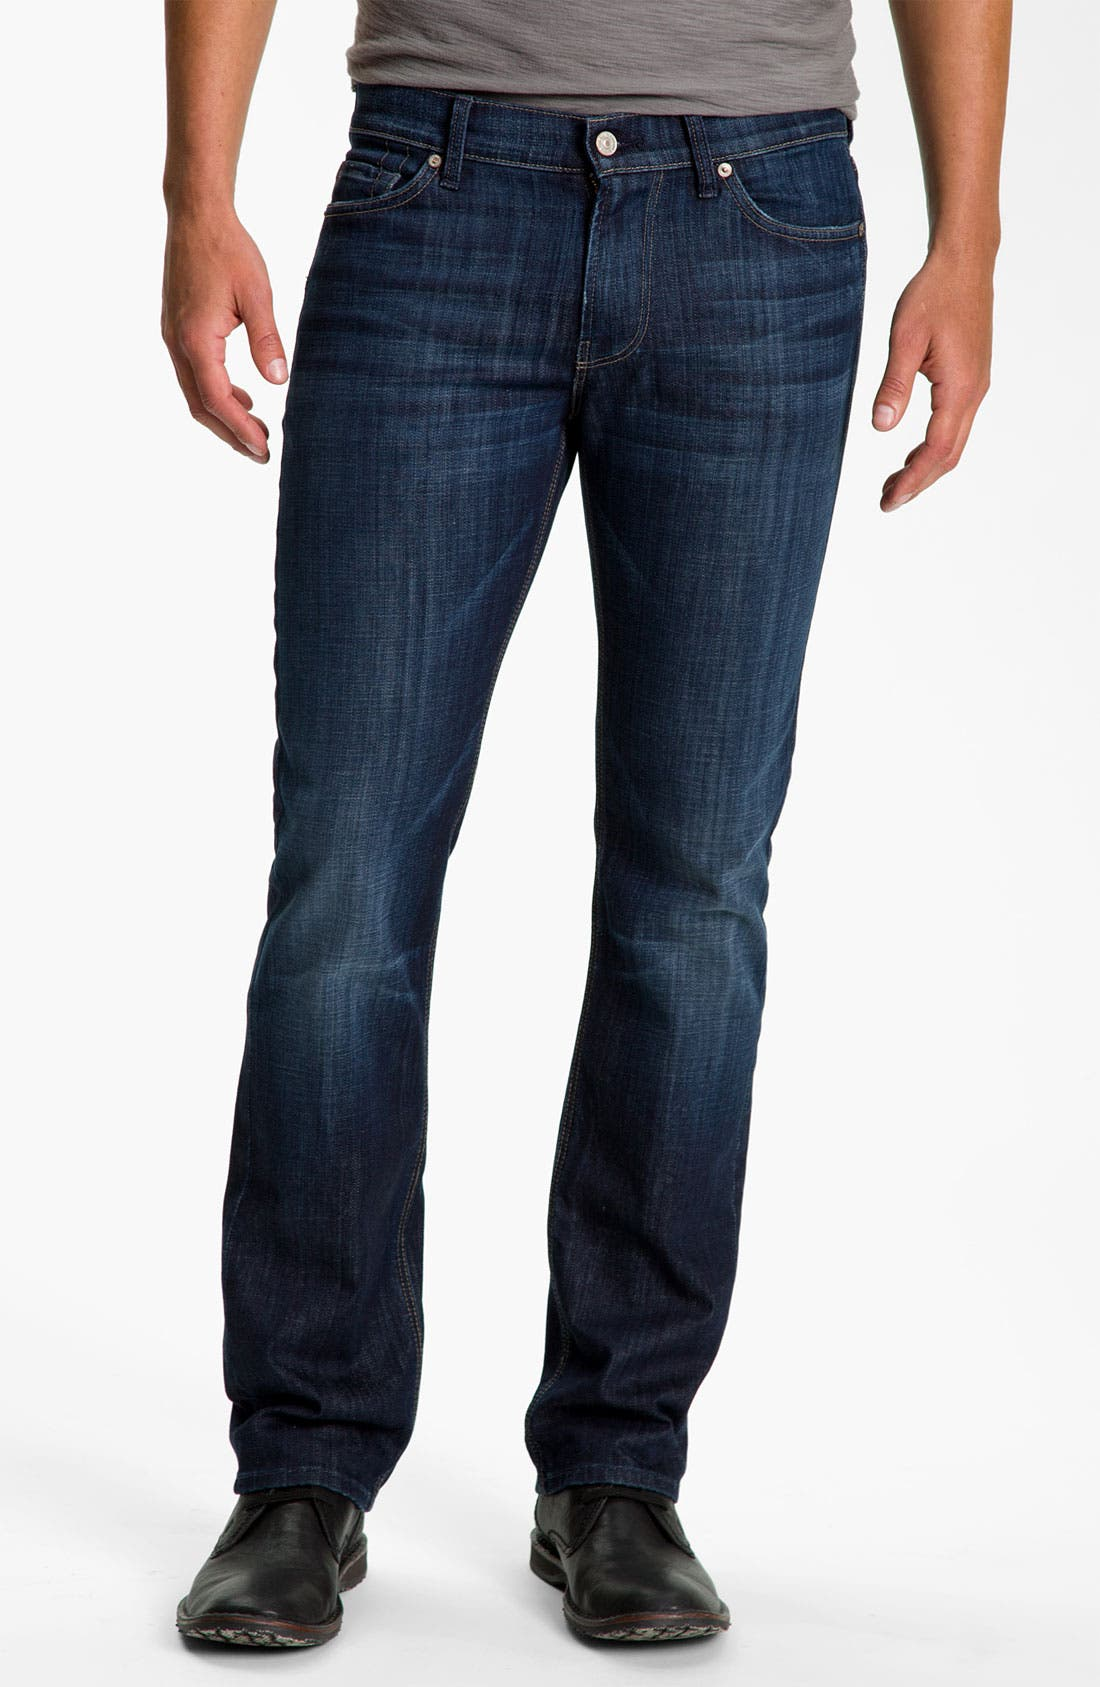 Alternate Image 1 Selected - 7 For All Mankind® Slimmy Slim Fit Jeans (Los Angeles Dark)